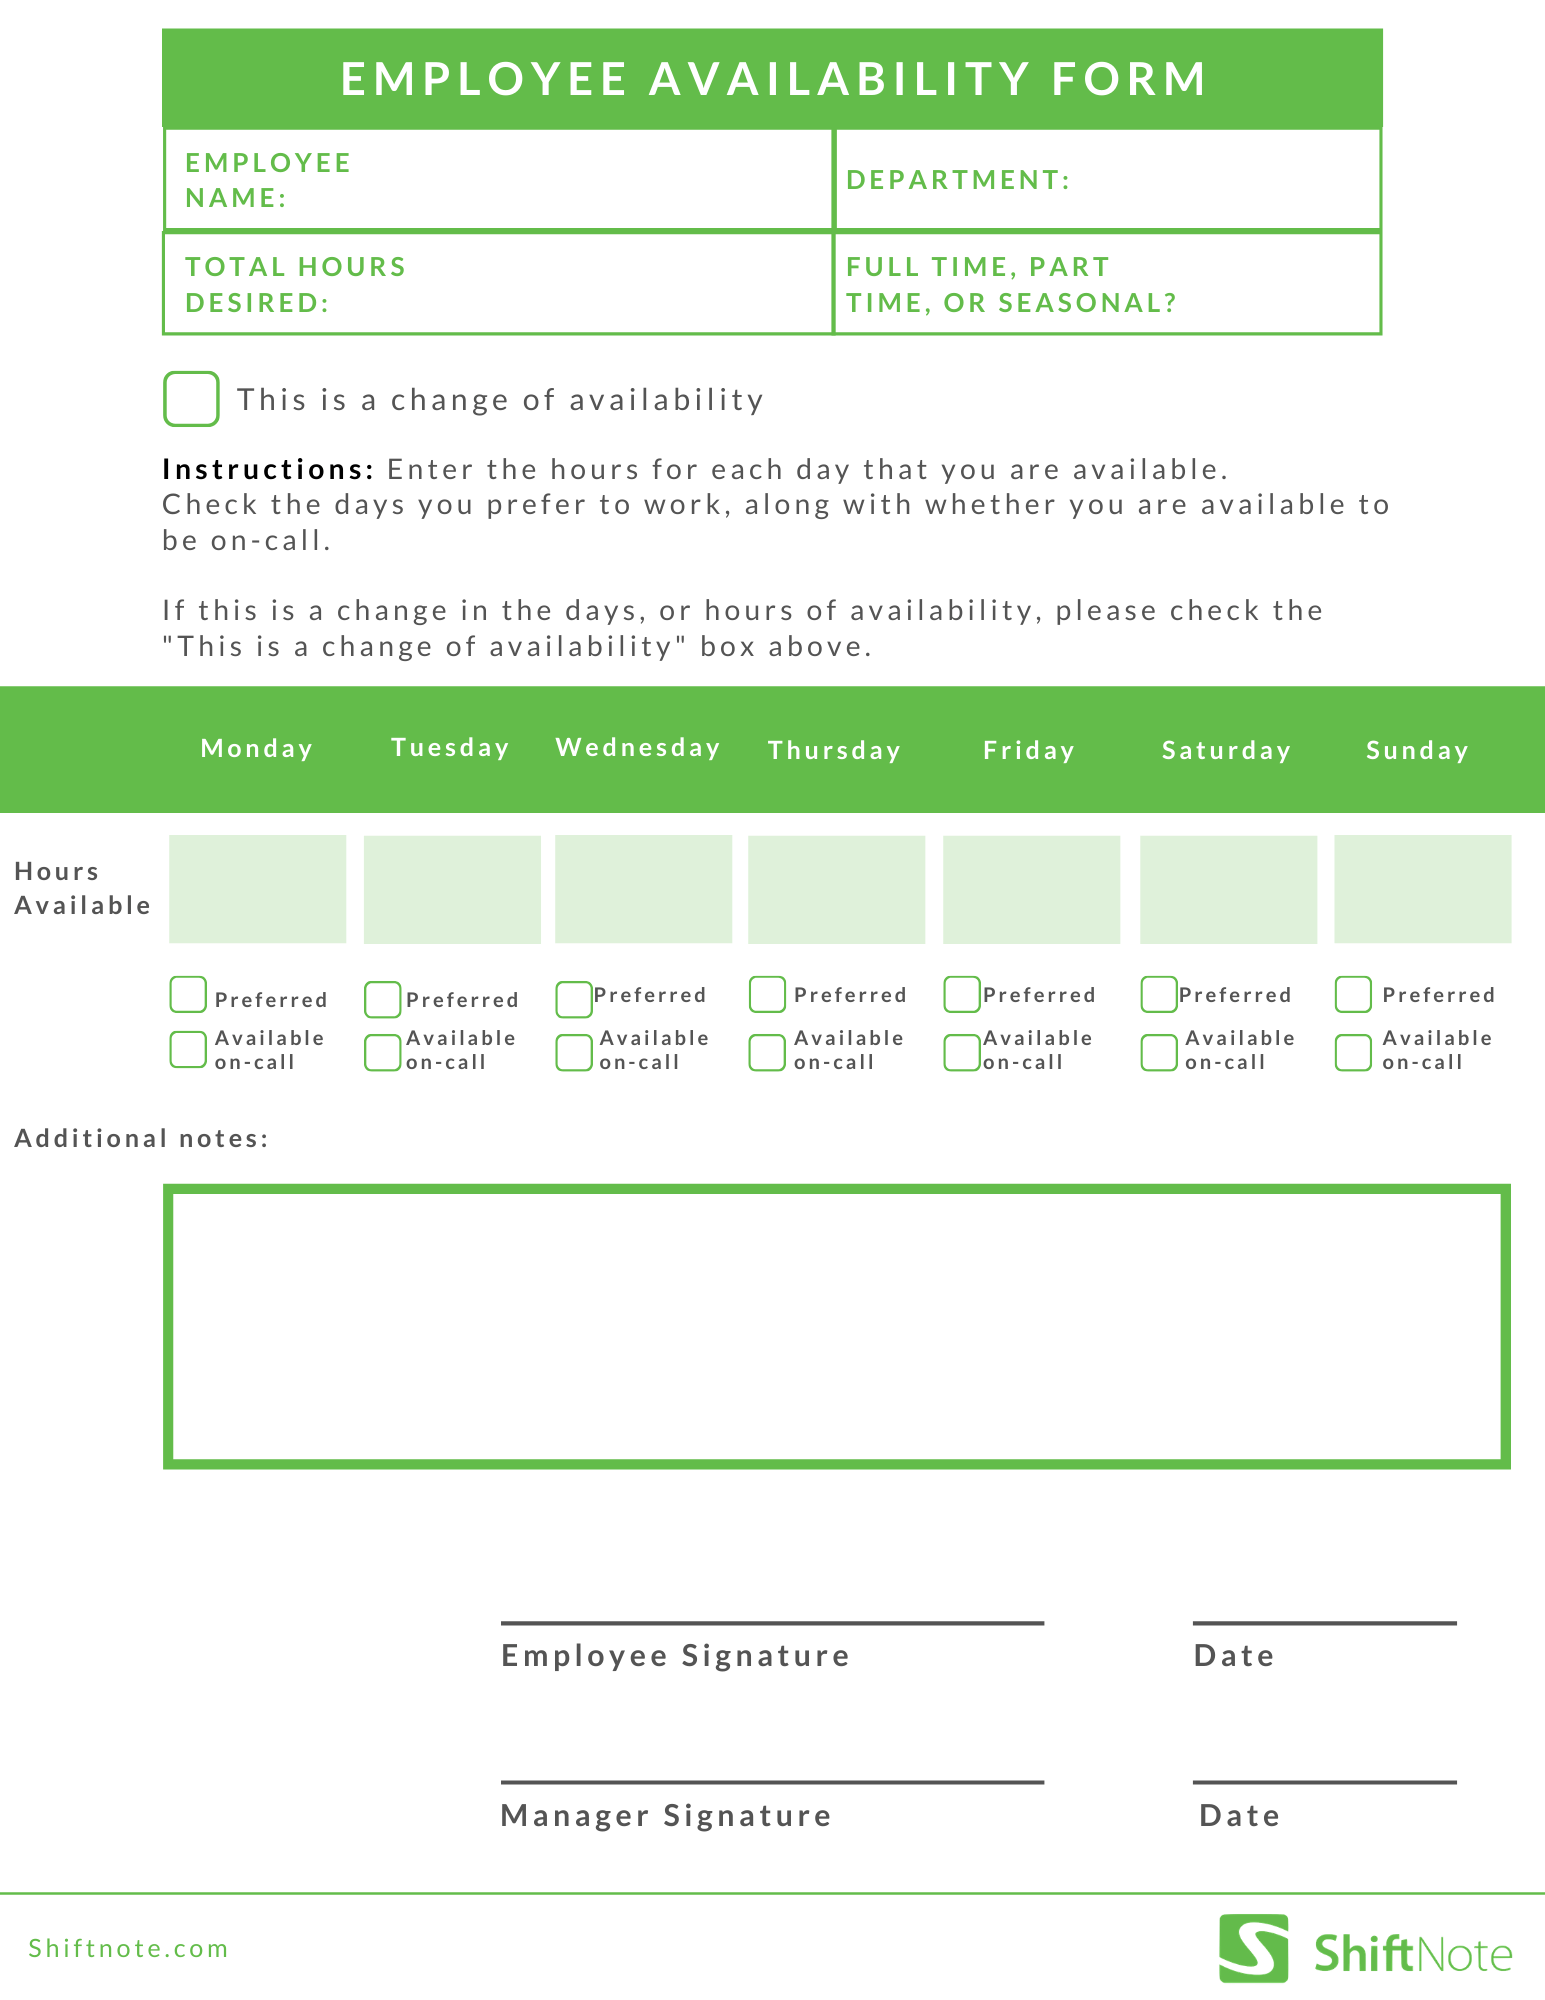 Free Employee Availability Form Template